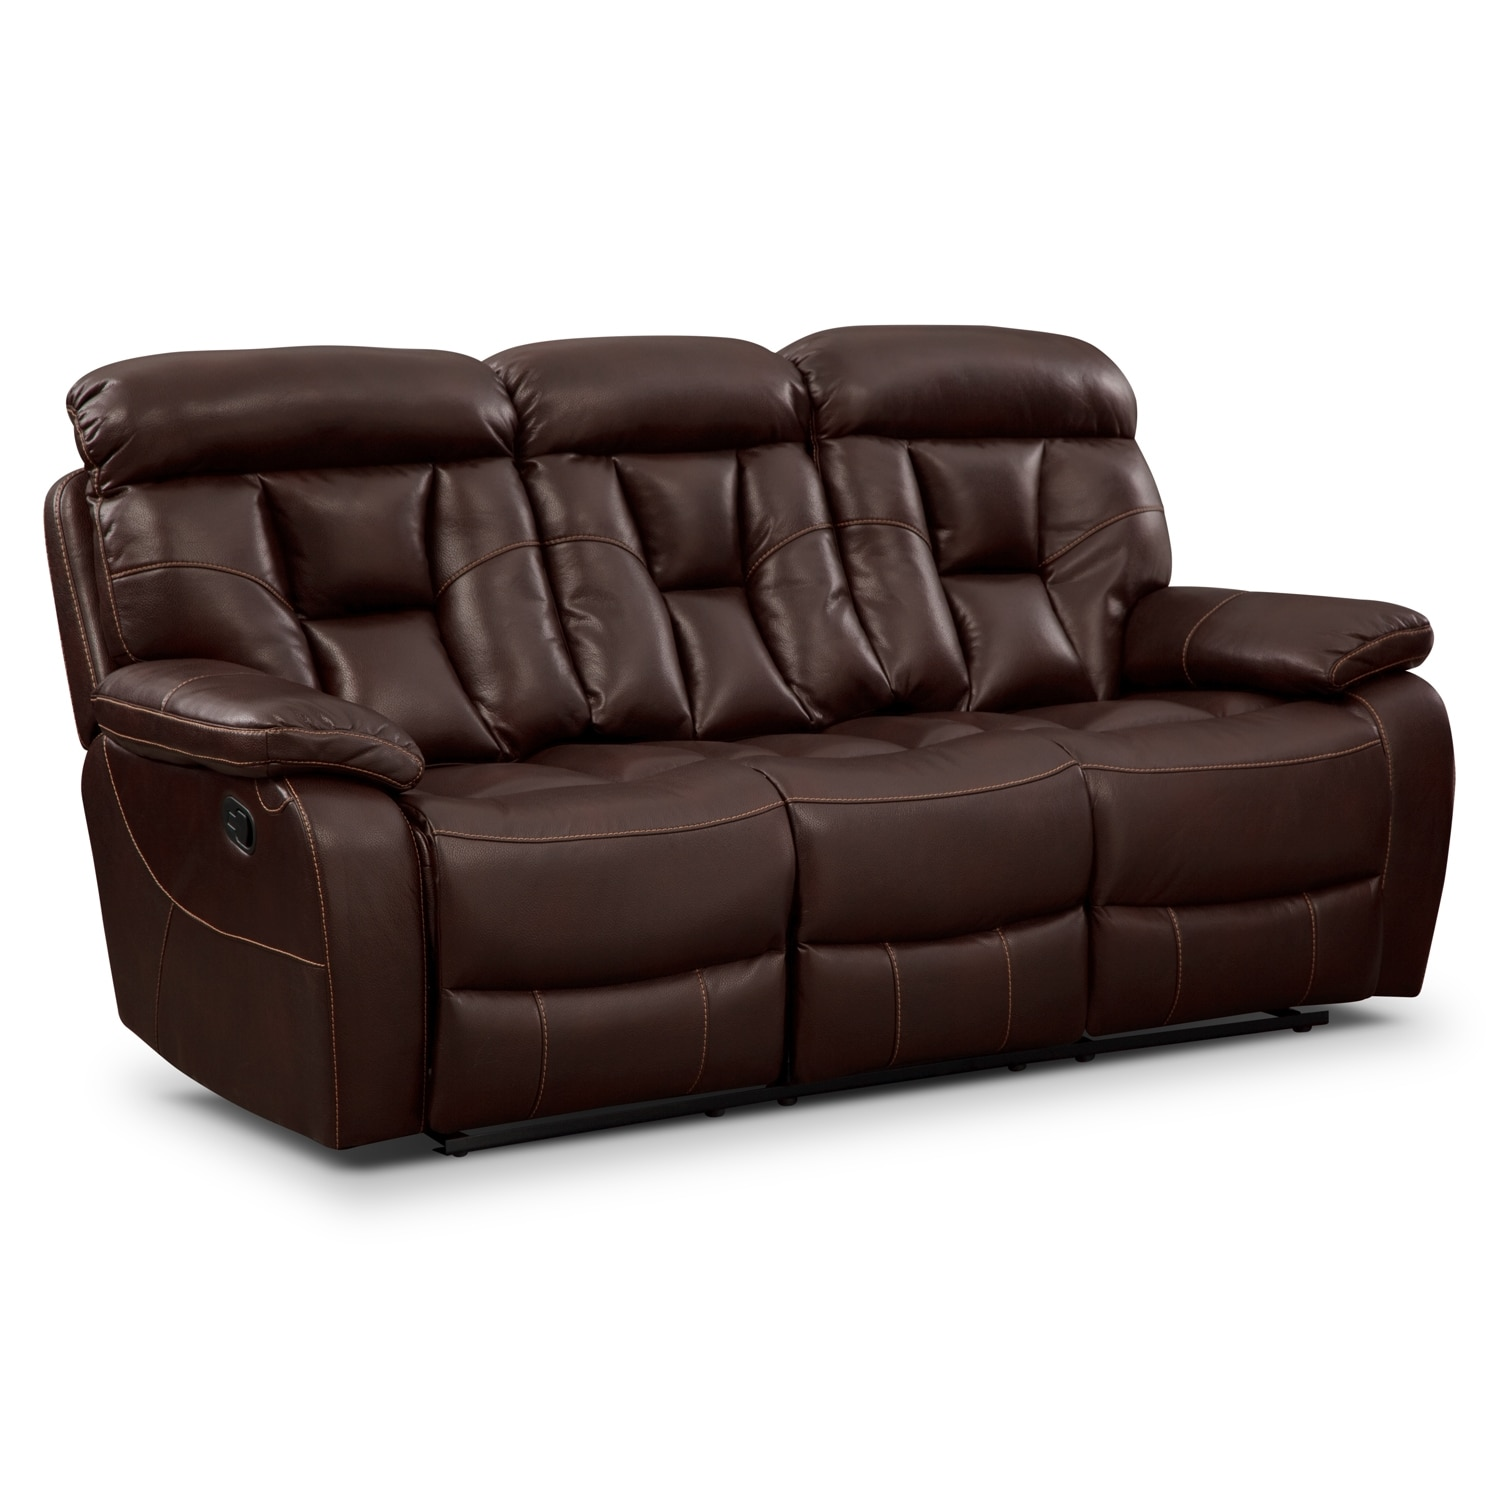 Living Room Furniture - Dakota Reclining Sofa - Java